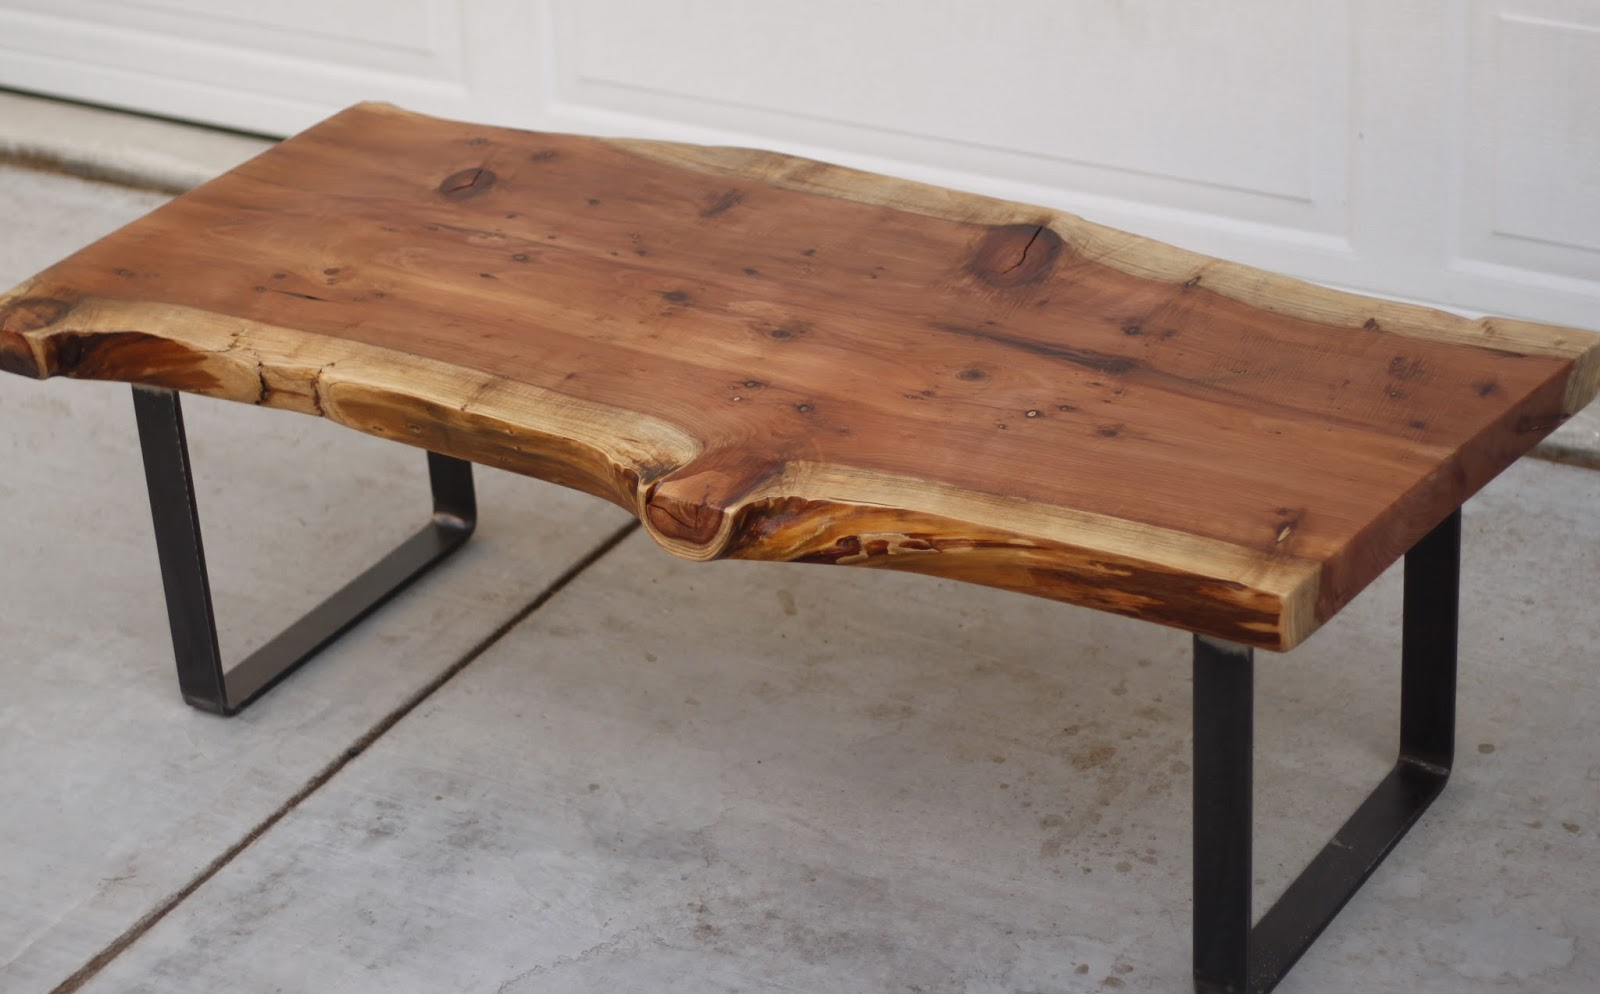 New reclaimed wood table ... reclaimed wood tables amazing reclaimed wood coffee table ... aththzo